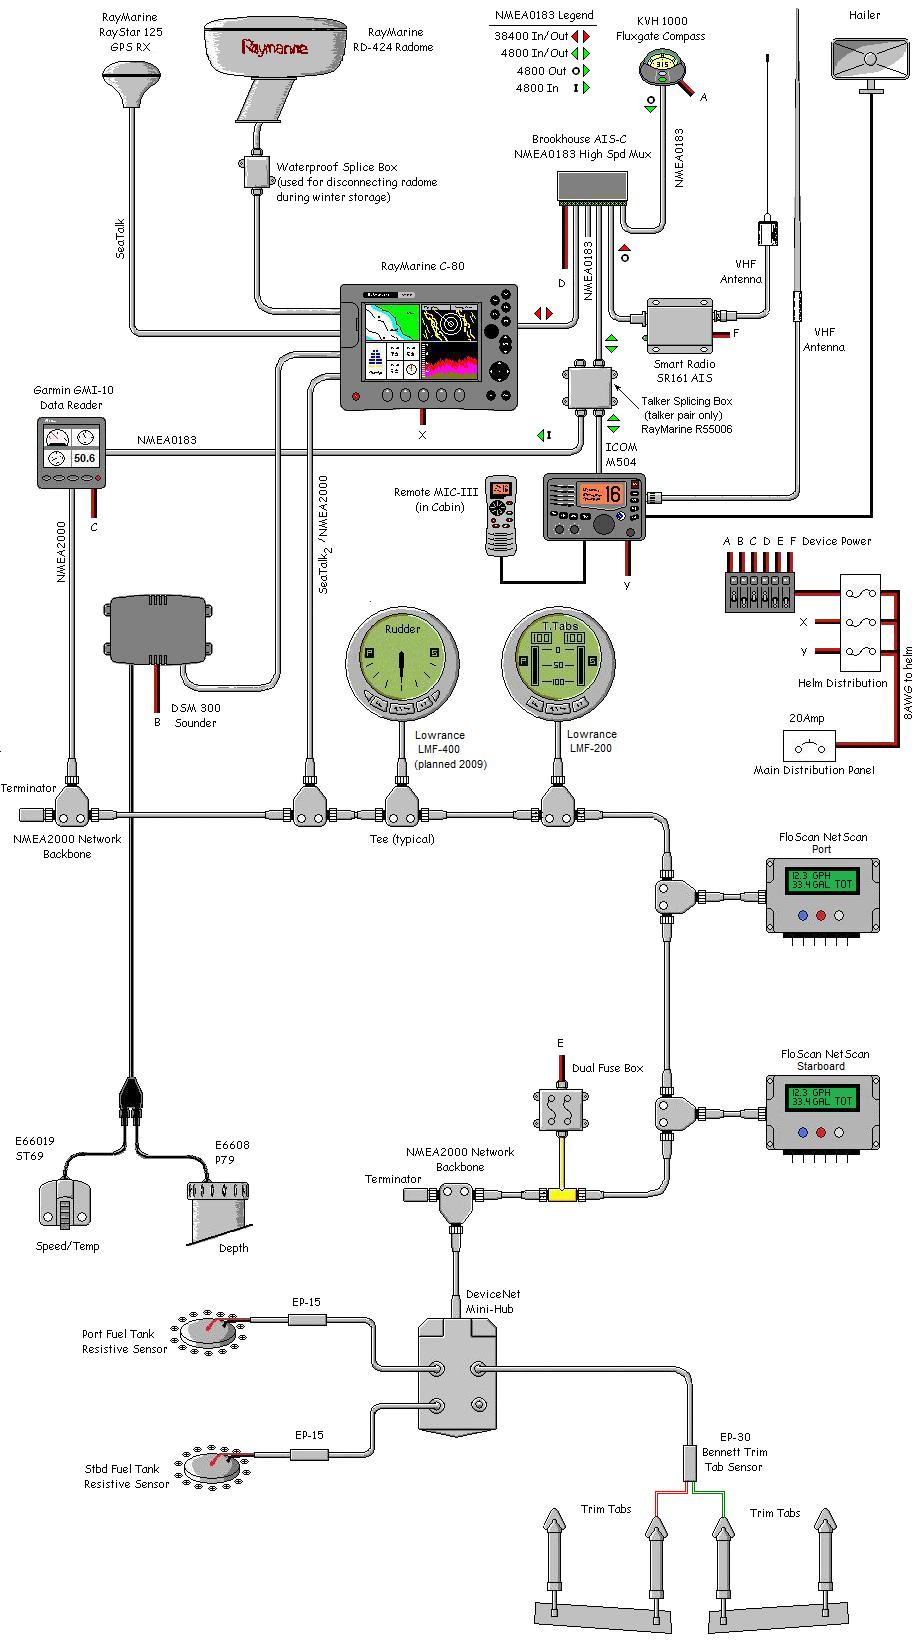 Bilge Pump Float Switch Wiring Diagram together with Float Switches Wiring Diagram together with Rule Automatic Bilge Pump Wiring Diagram further Installing Bilge Pump furthermore Bilge Pump Instalation. on rule pumps wiring diagram